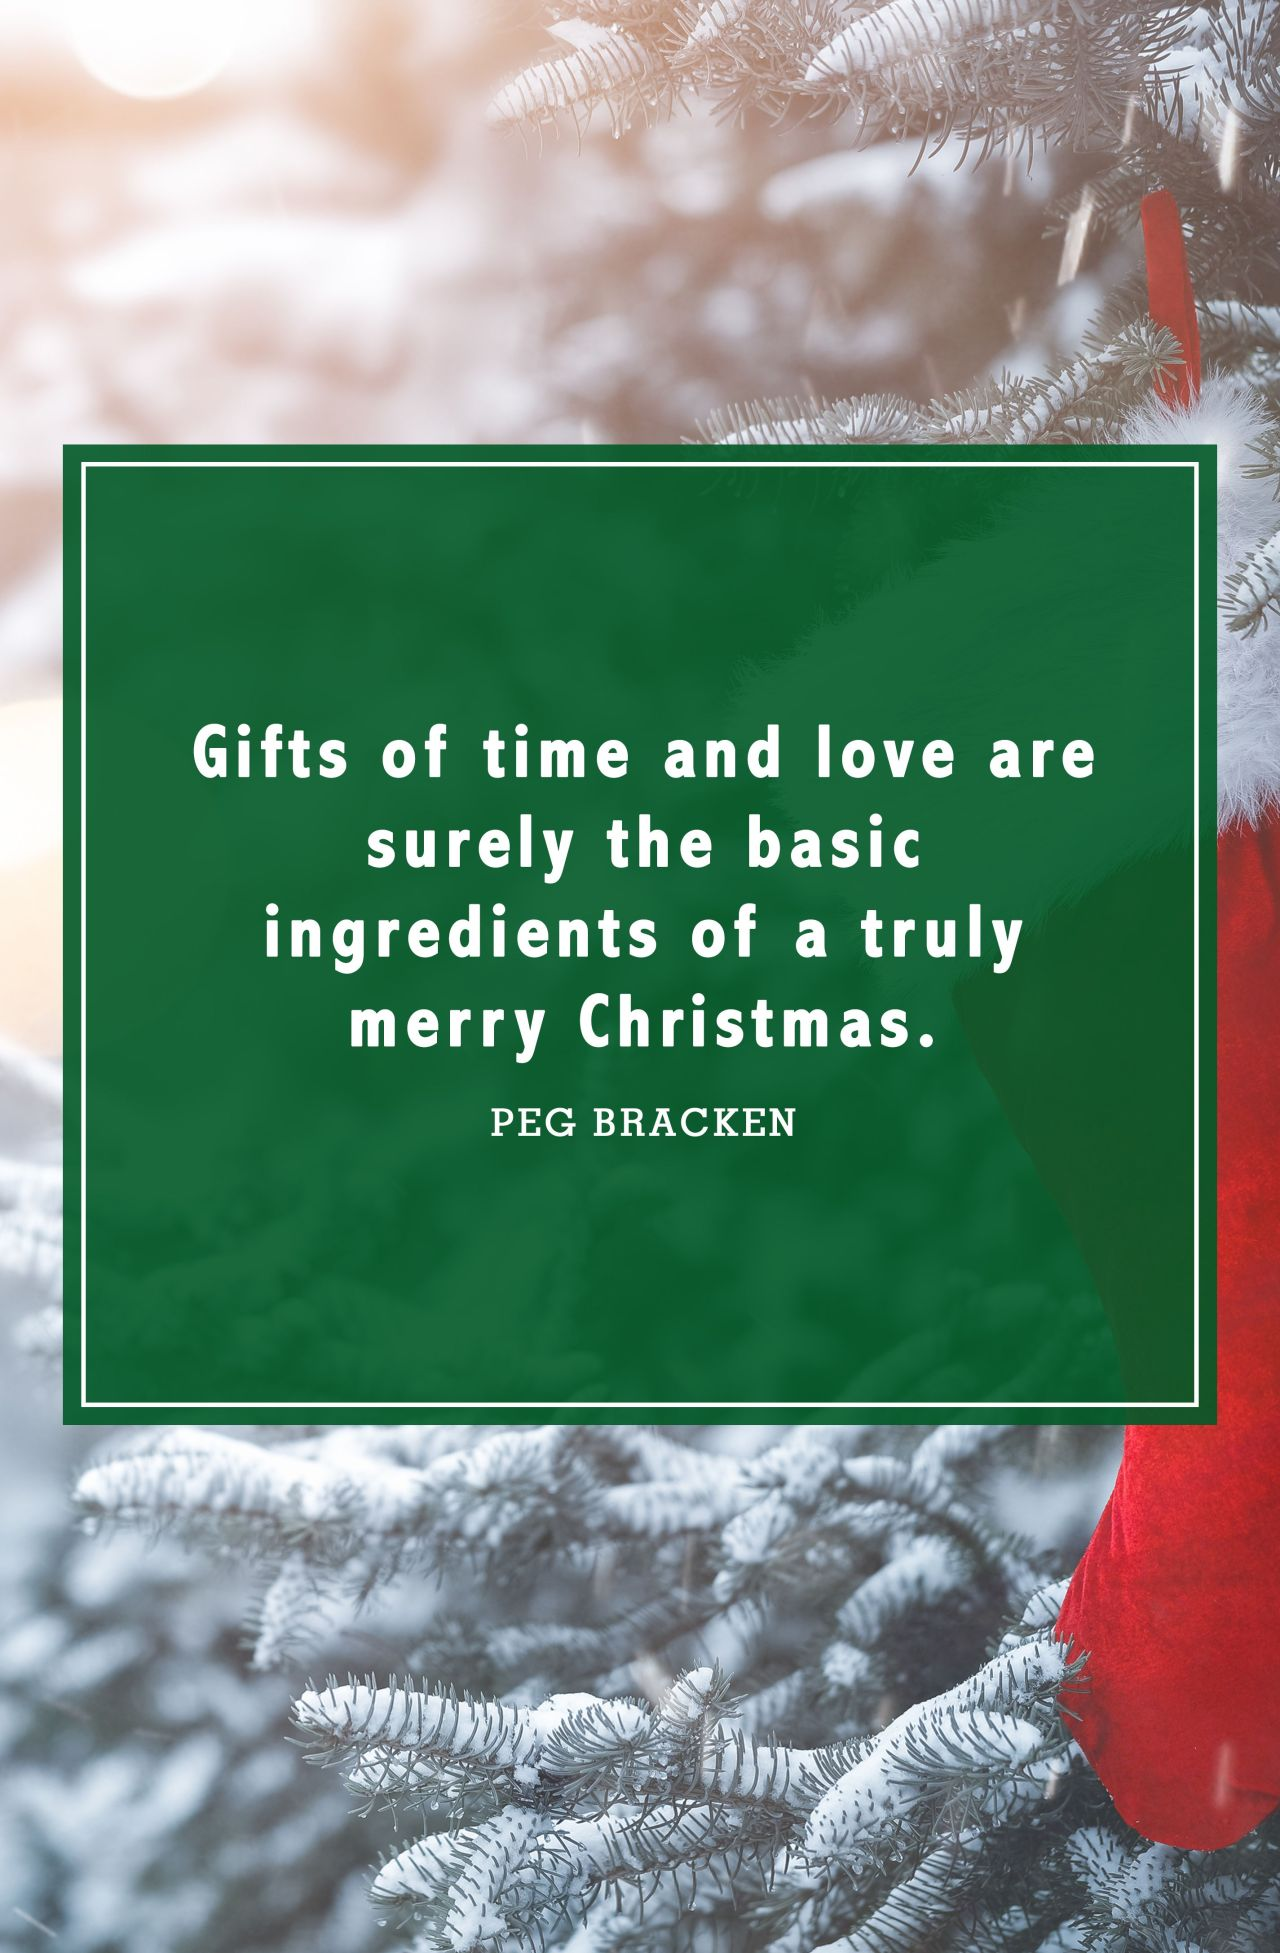 christmas-quotes-peg-bracken-1537542253